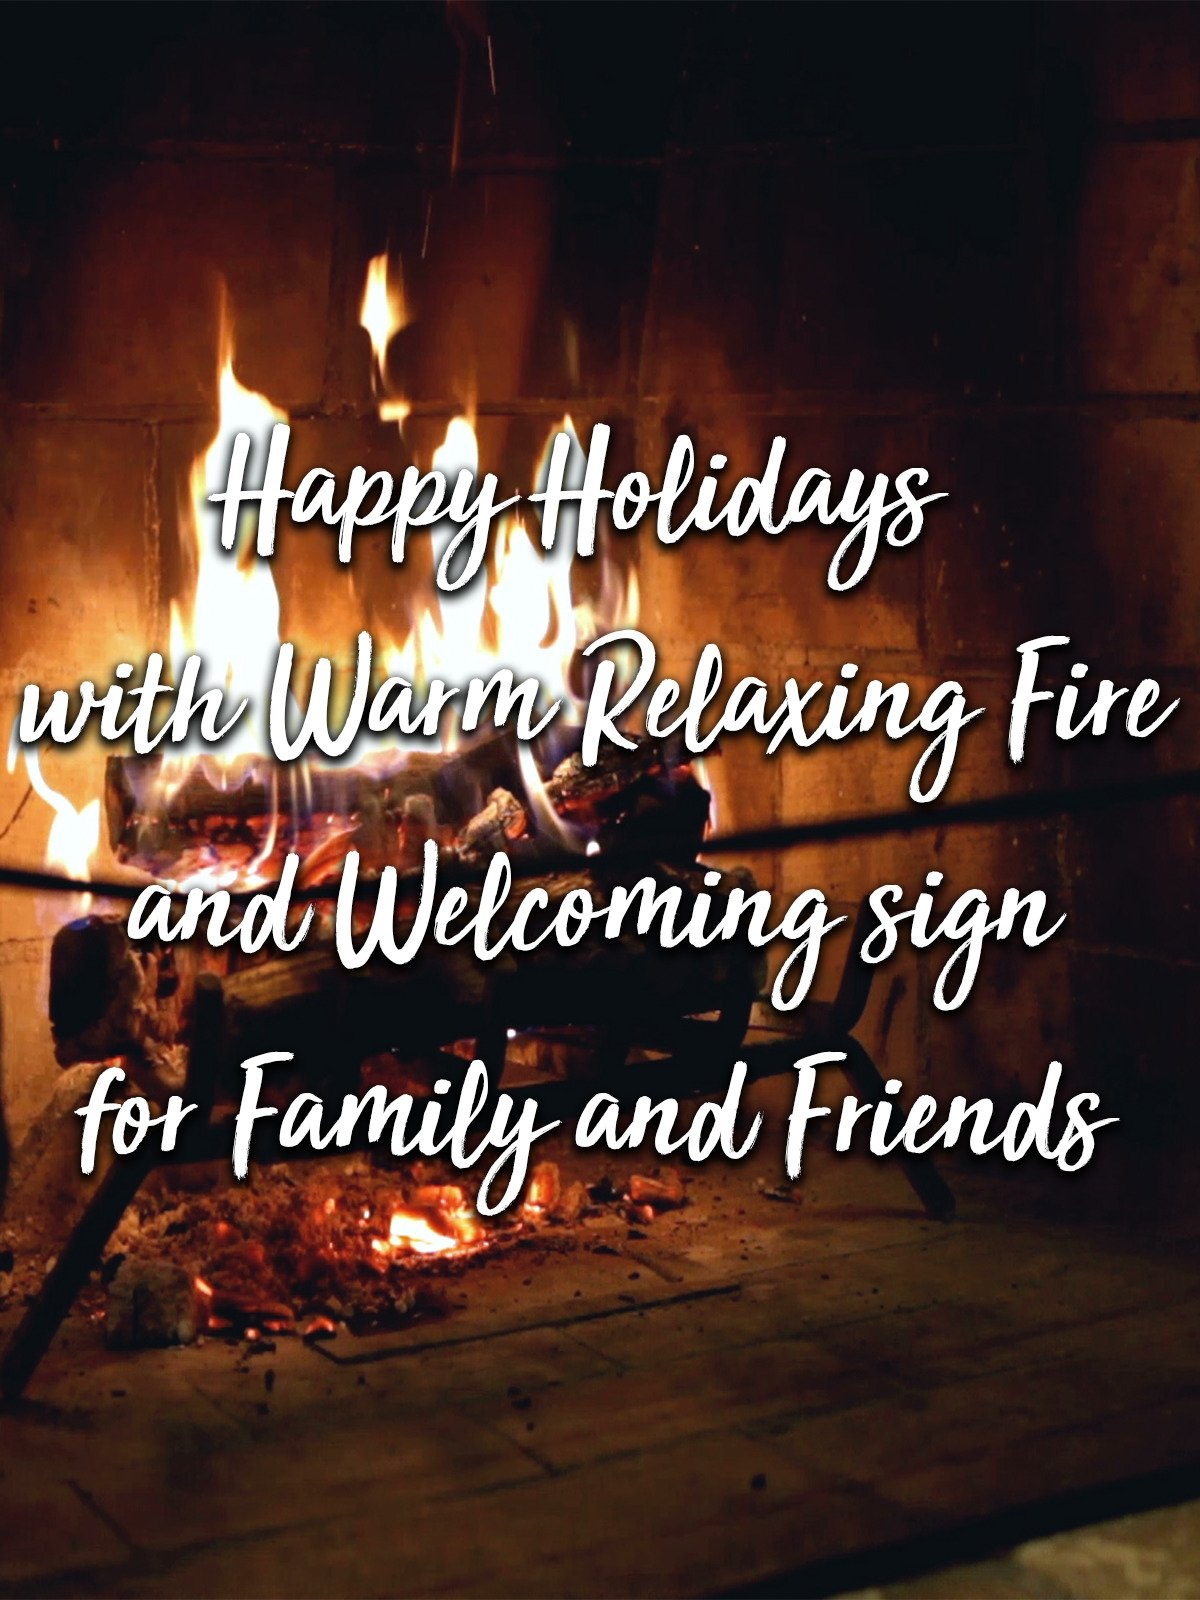 Happy Holidays with Warm Relaxing Fire and Welcoming sign for Family and Friends